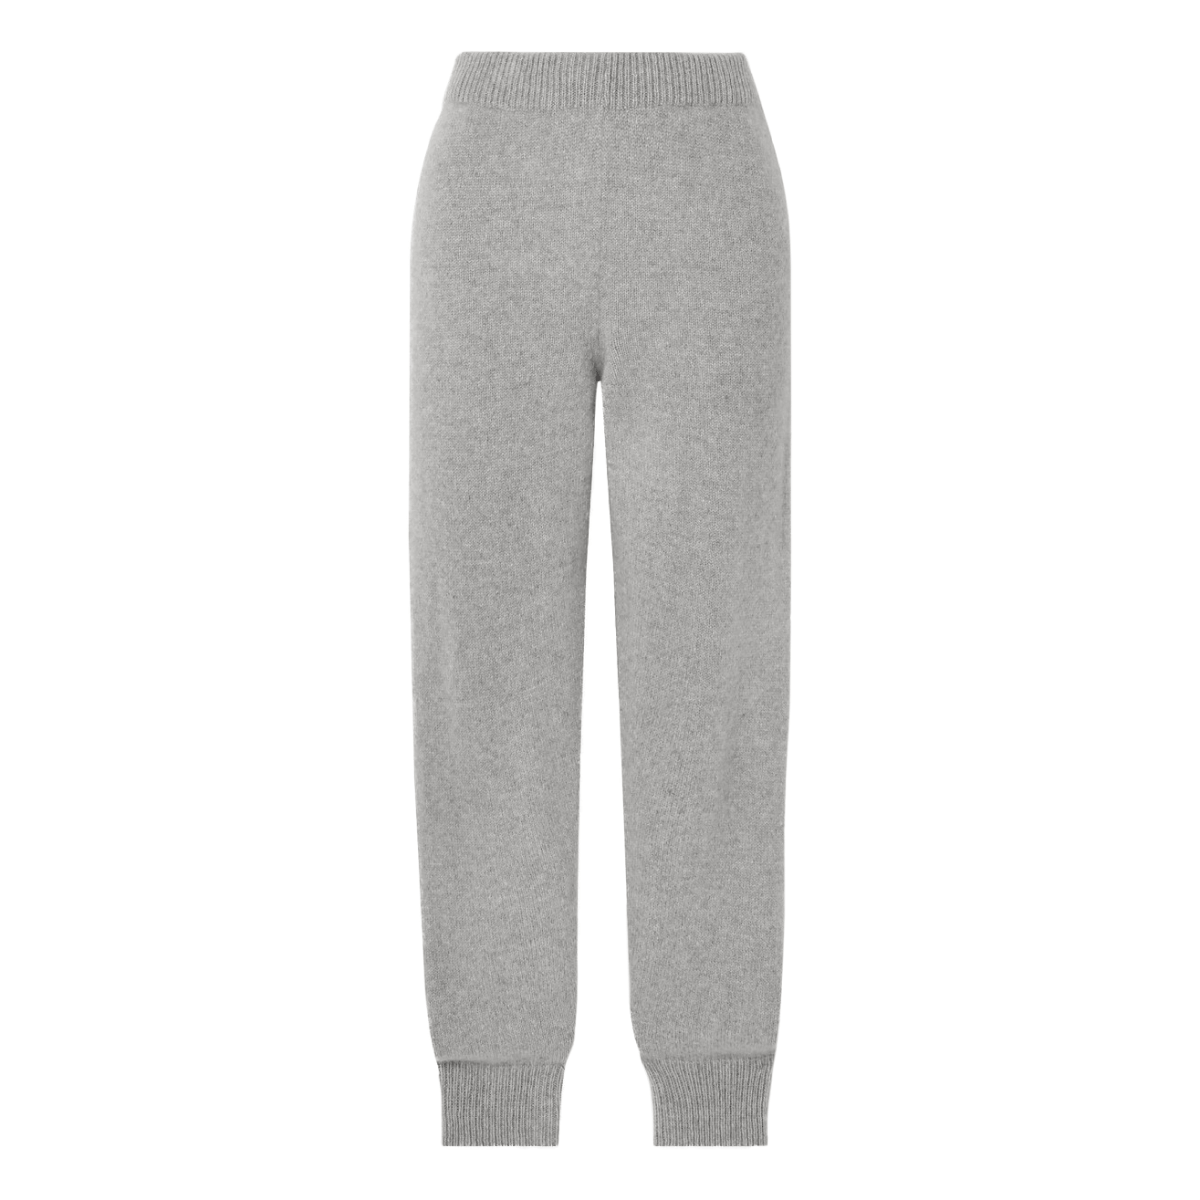 The Elder Statesman track pants